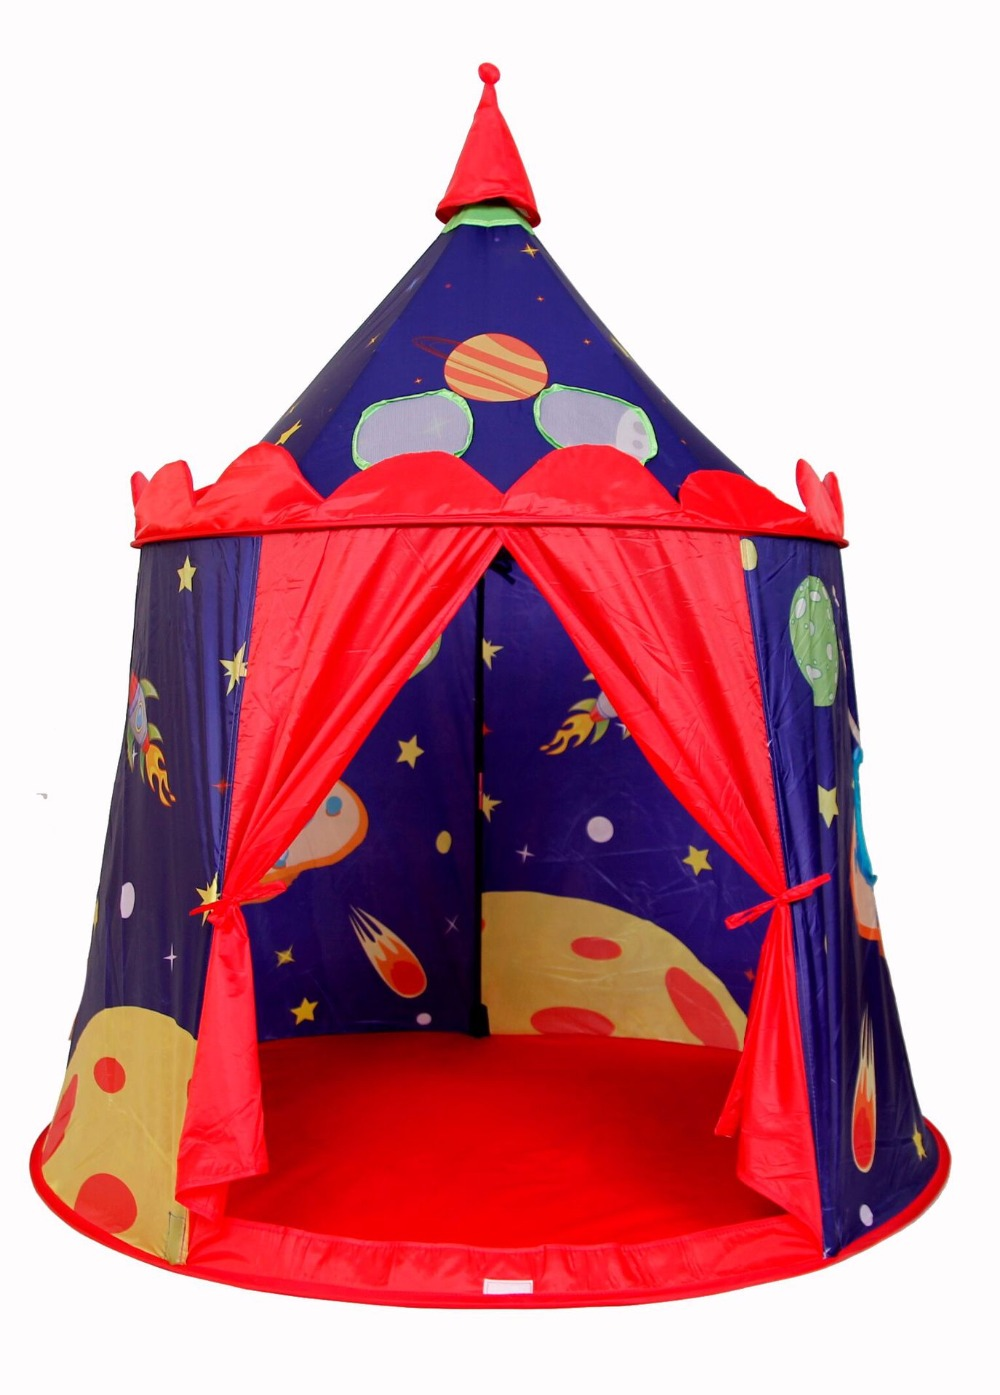 YARD Play Tent Portable Foldable Tipi Prince Kids Tent Play Yard Indoor Sport Toys foldable play tent kids children boy girl castle cubby play house bithday christmas gifts outdoor indoor tents